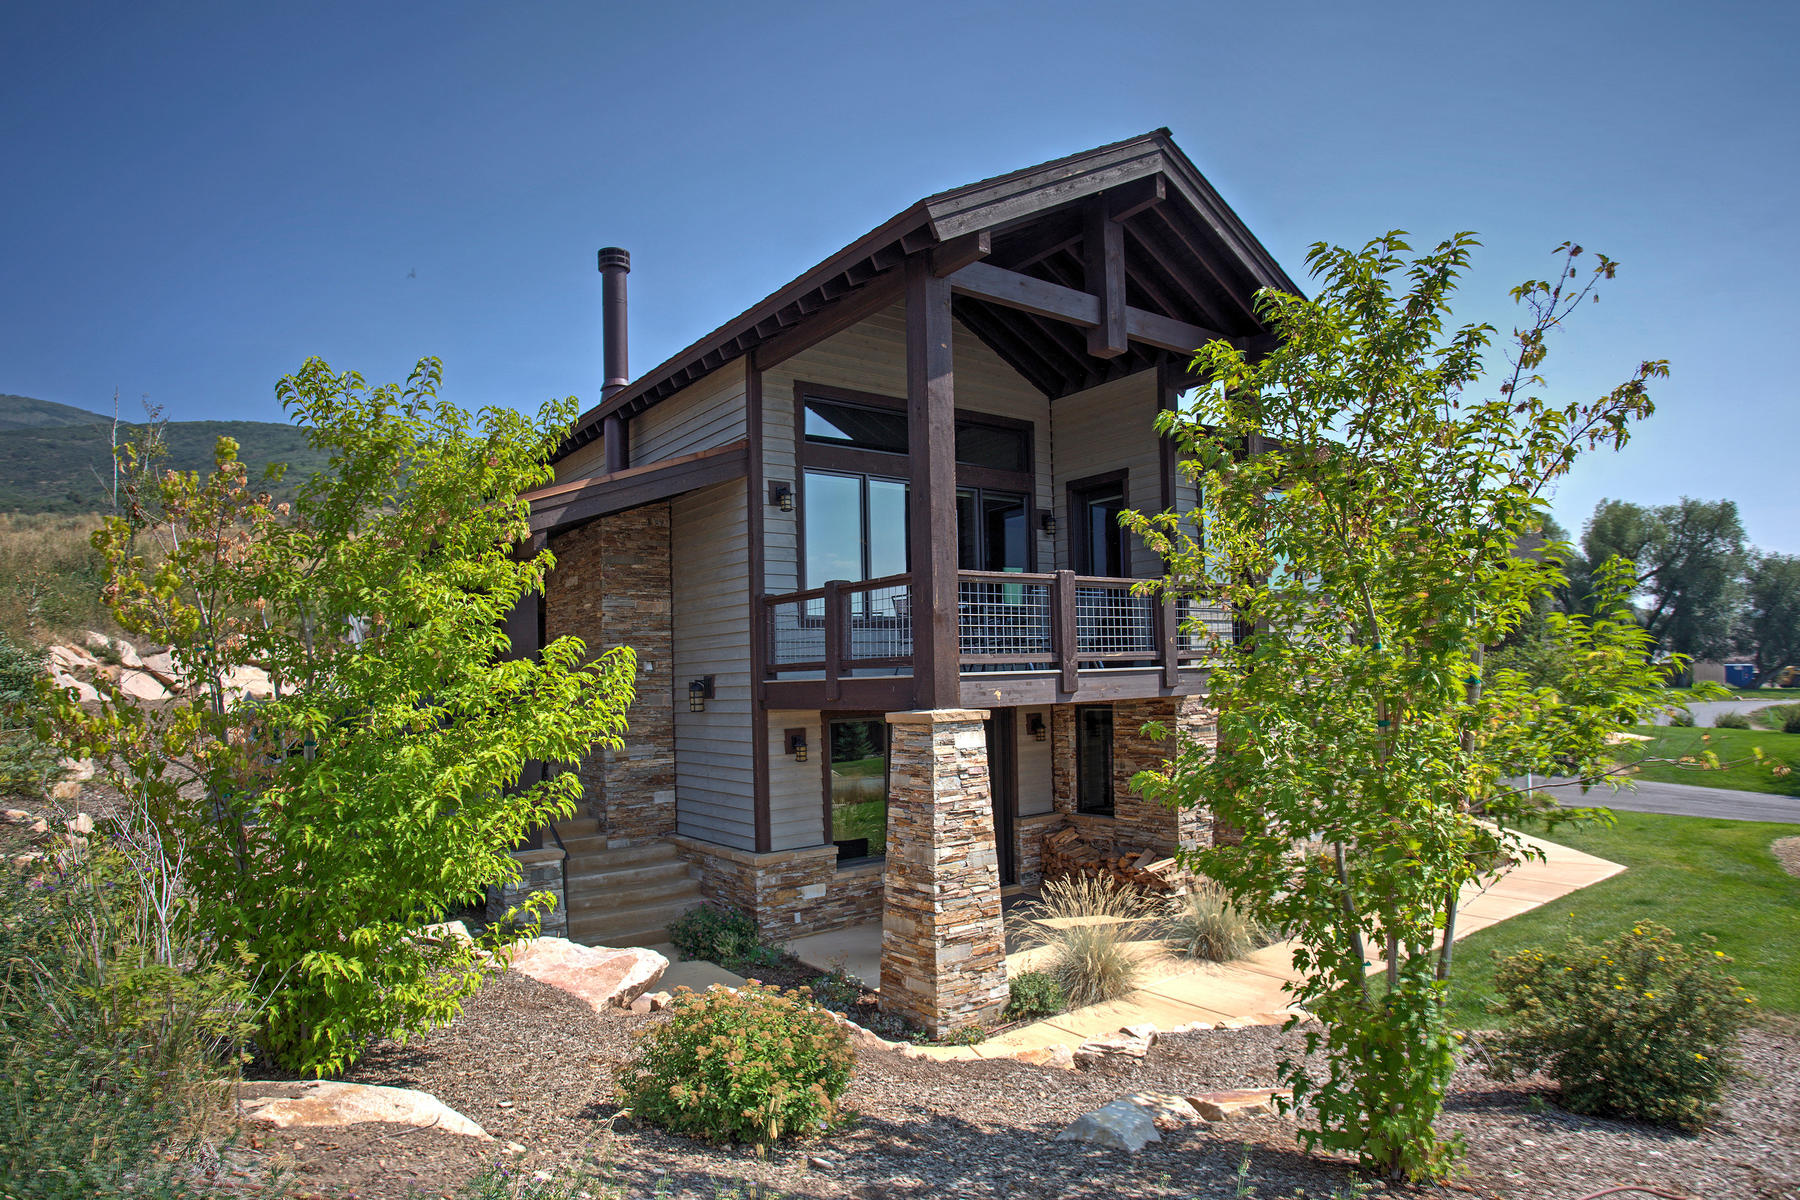 Single Family Home for Sale at For the Connoisseur of Quality and Design 932 Cabin Way, Kamas, Utah, 84036 United States